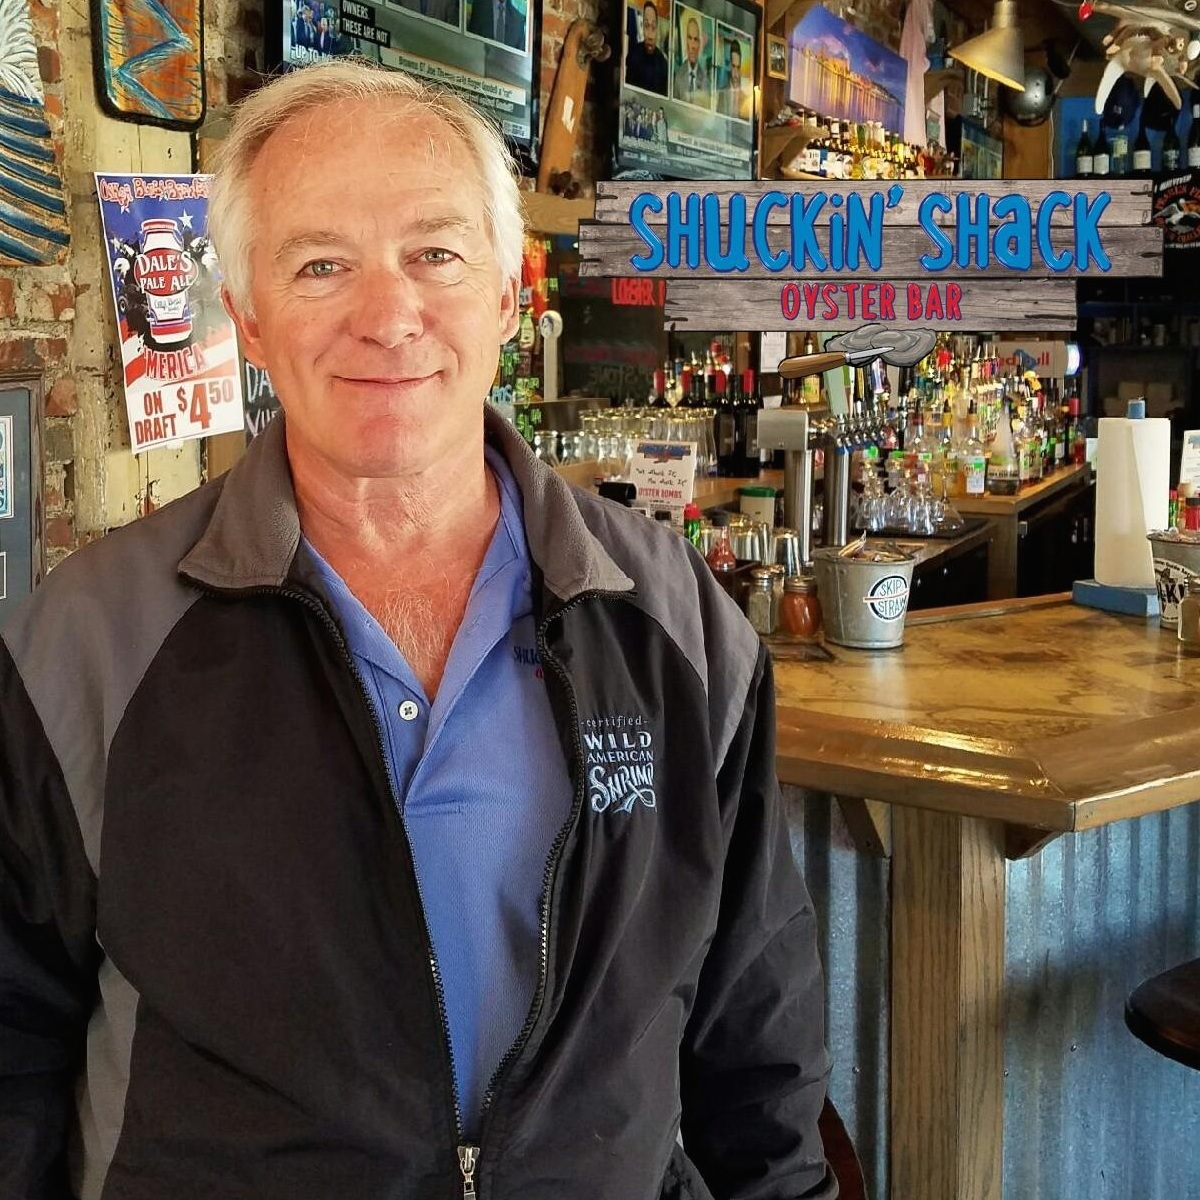 Mario Piccinin is the Vice President of Franchise Development for the Shuckin' Shack Restaurant Franchise and the man in charge of helping potential franchisees navigate our partner vetting process.